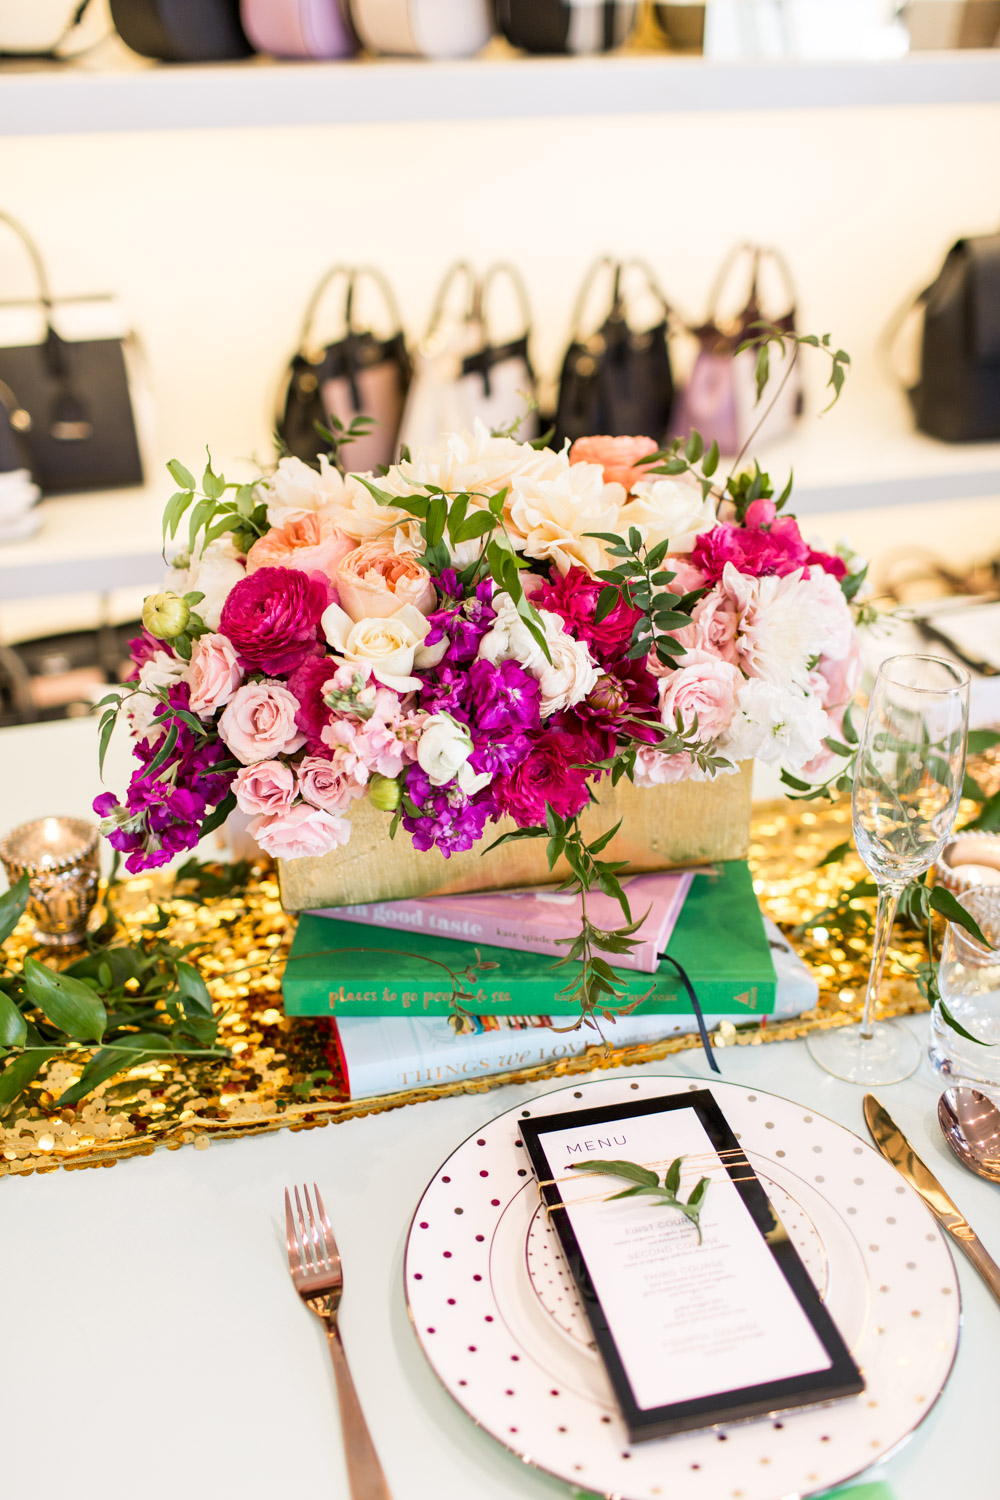 Kate Spade Bridal Event In San Diego With Couture Events